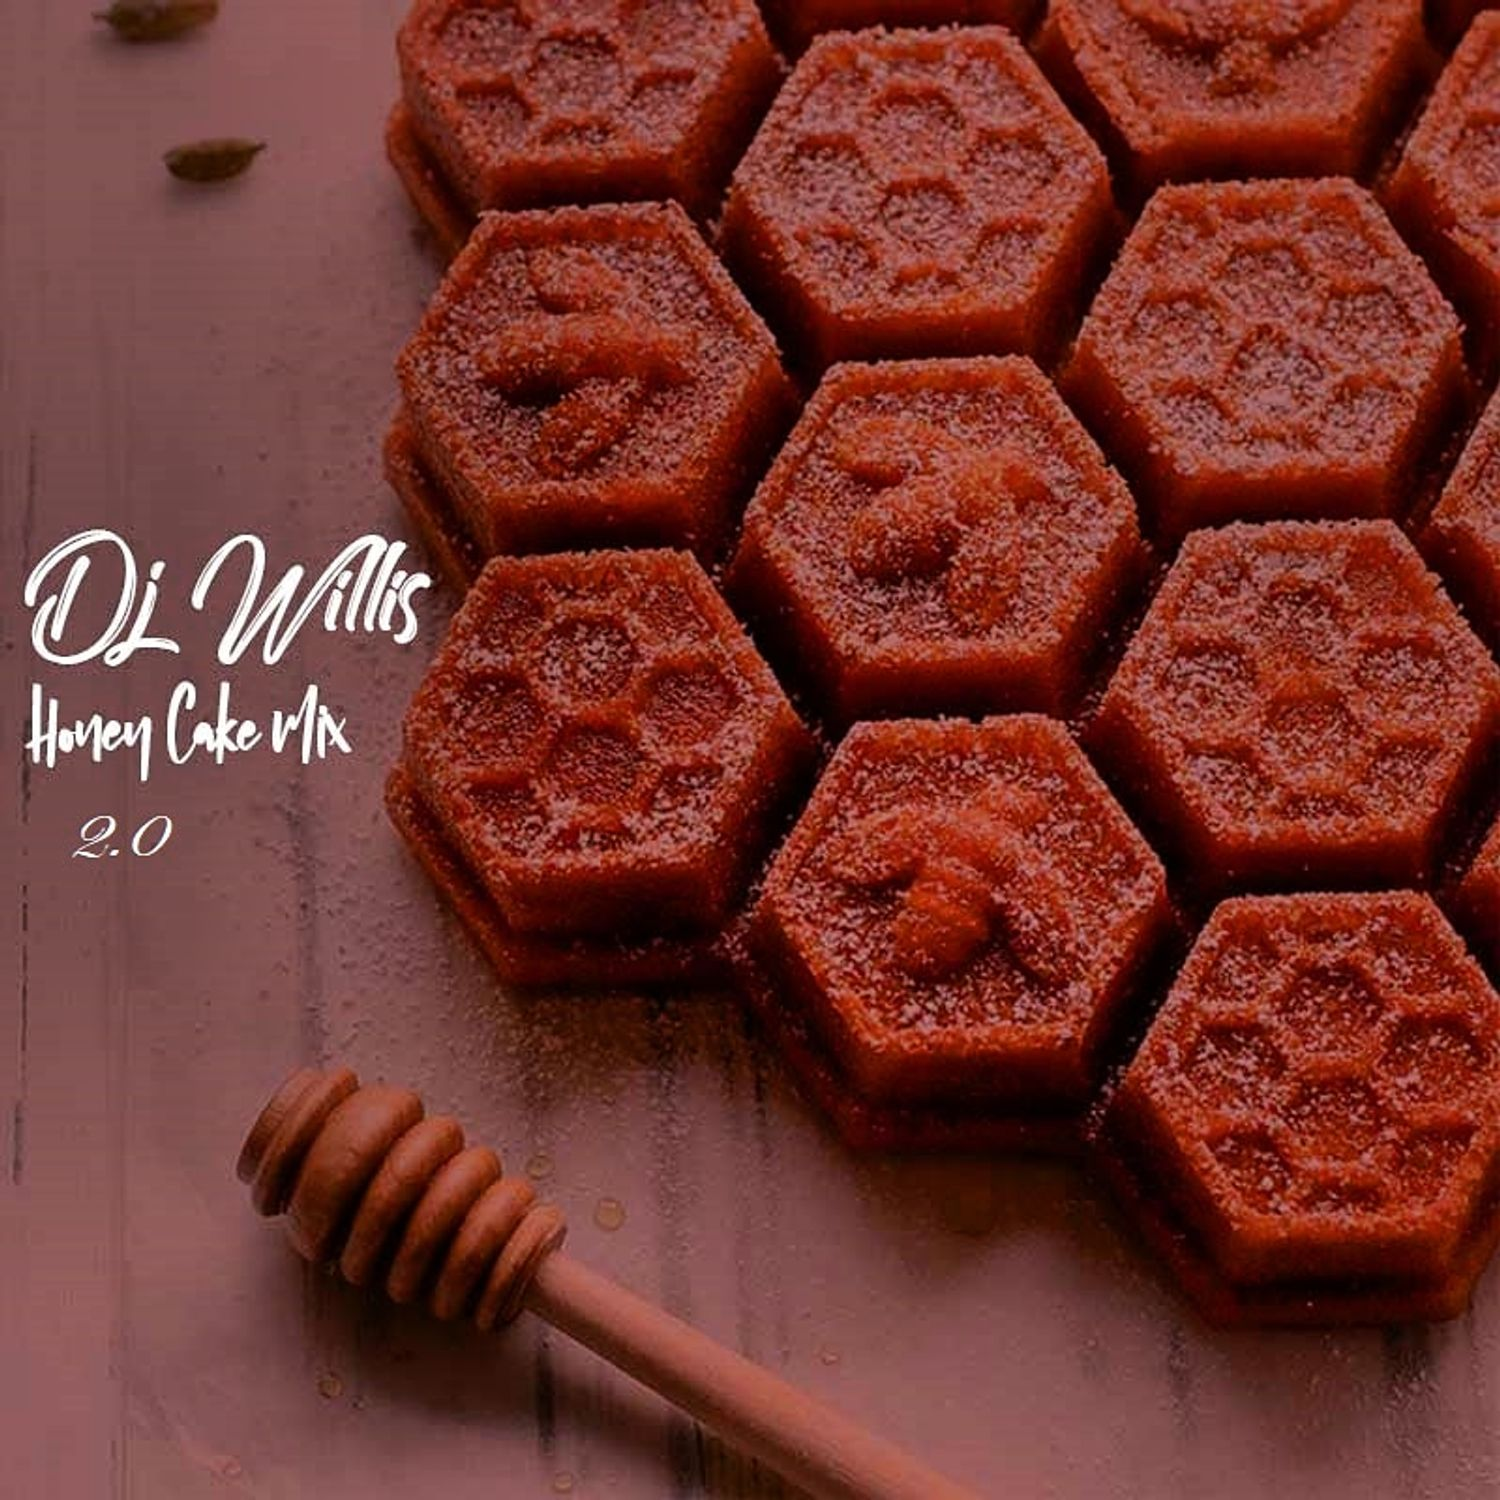 DJ Willis – Honey Cake Mixtape 2.0